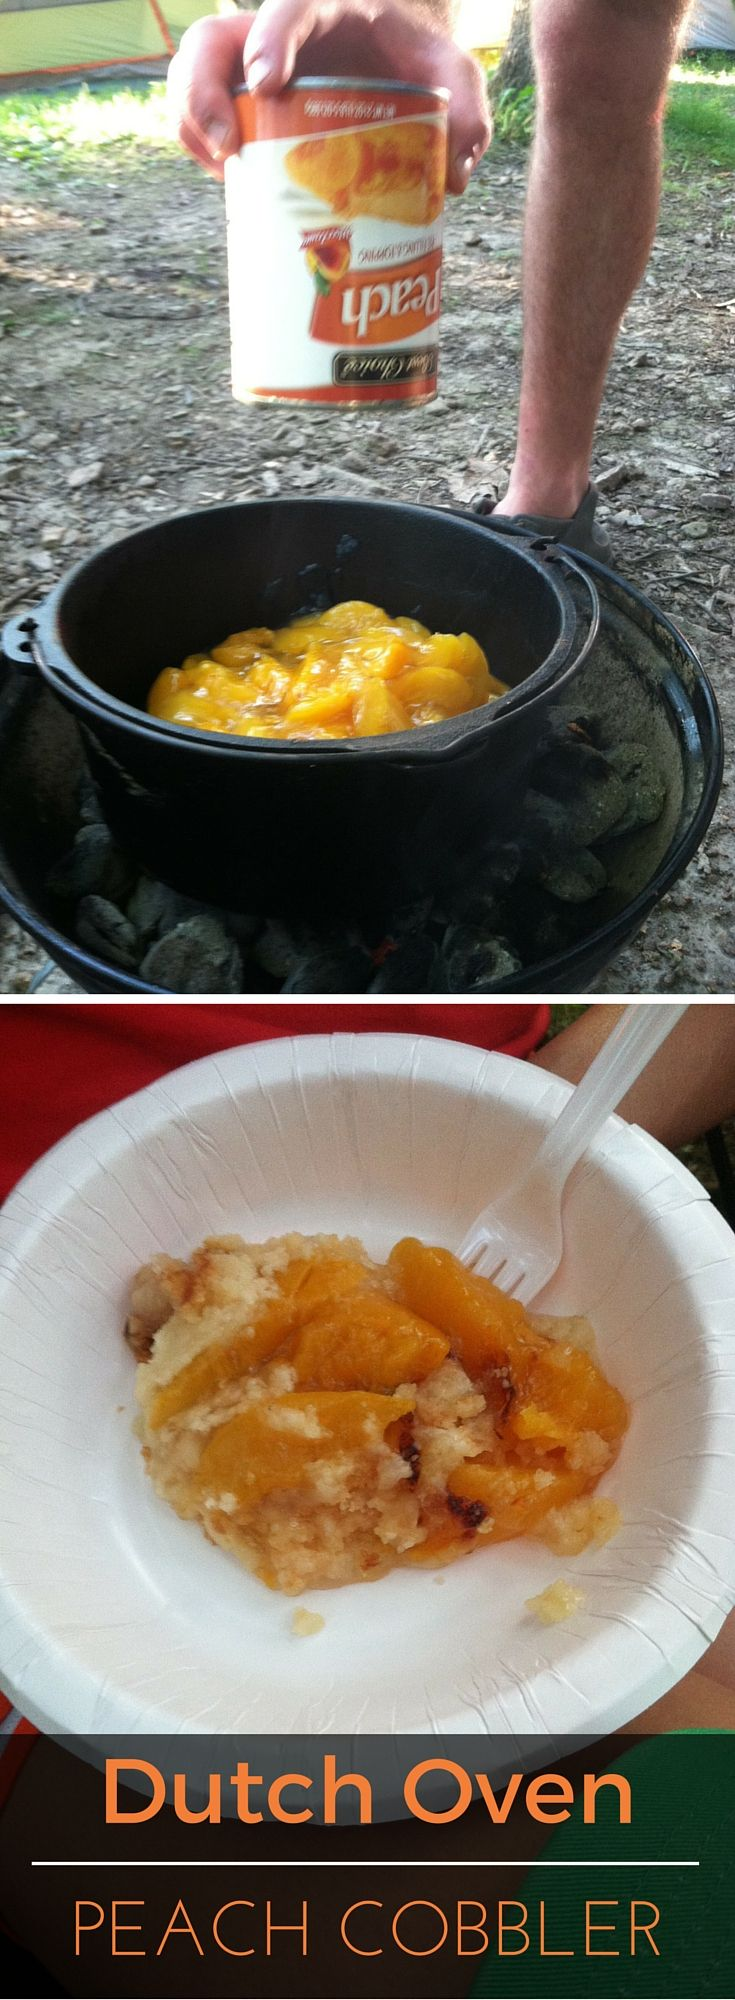 Dutch Oven Peach Cobbler - a fantastic camping recipe that only takes 3 ingredients! | Best Choice Brand.